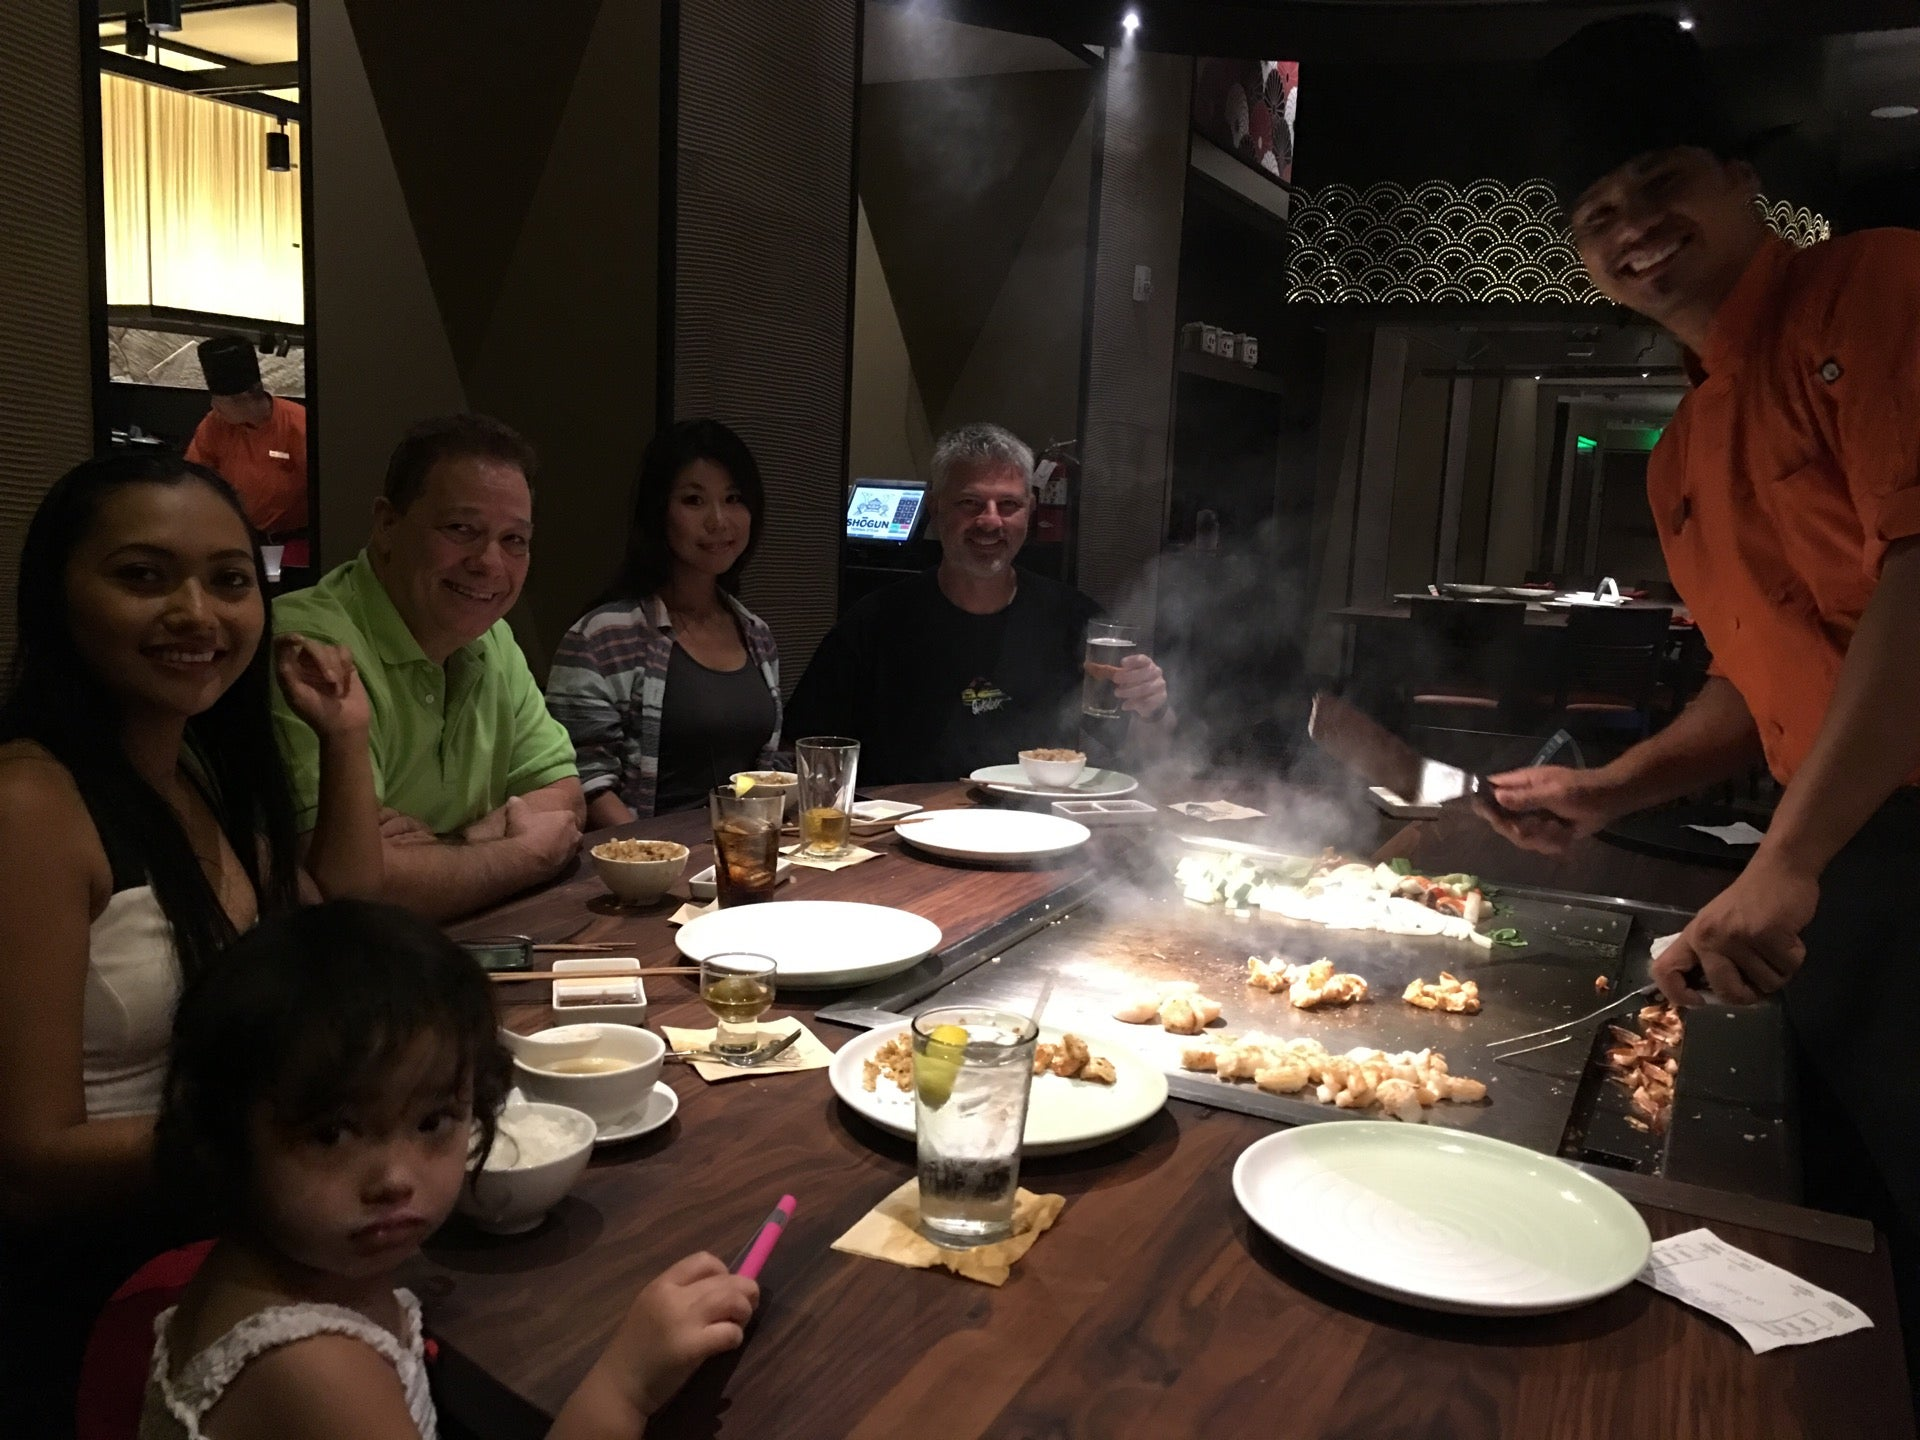 49e014cff83 Shogun Teppanyaki Restaurant in Palm Desert - Parent Reviews on Winnie